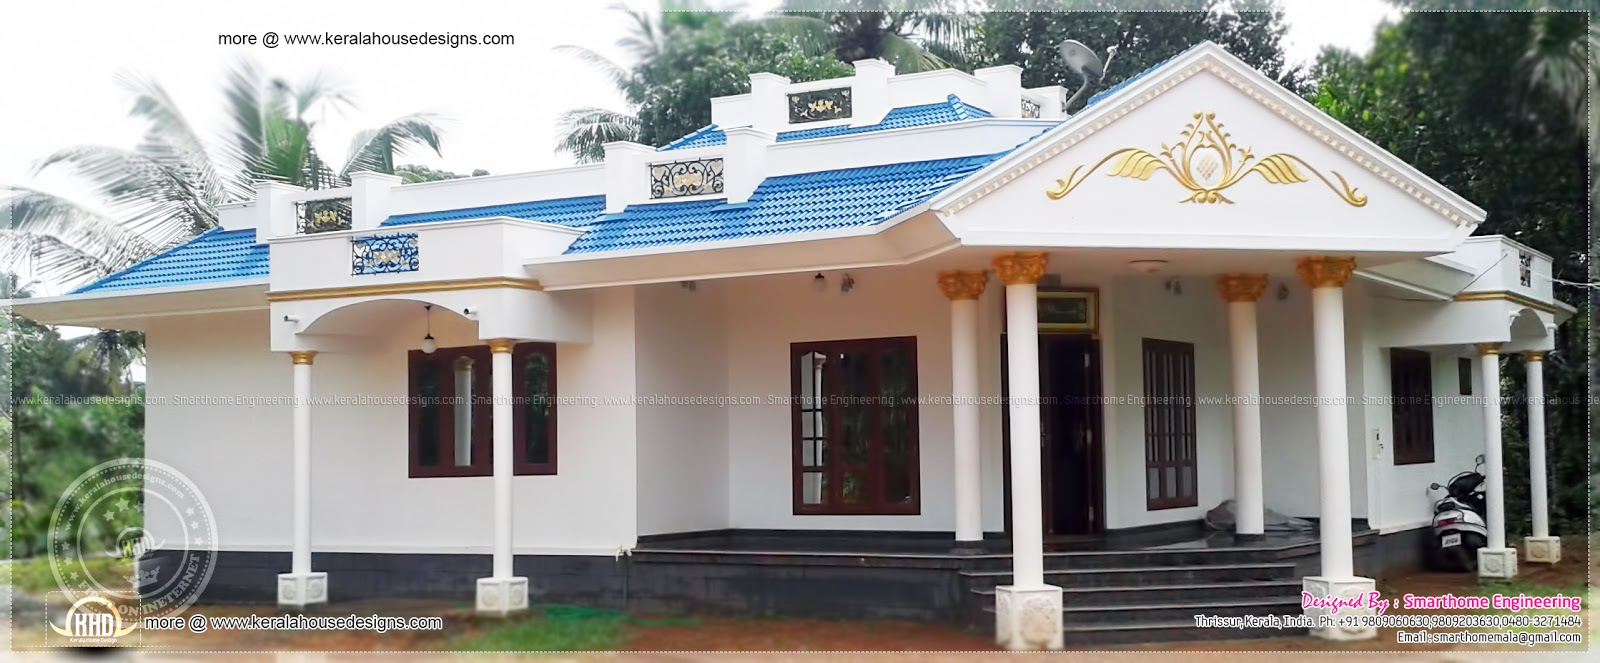 1680 sq ft 3 bedroom single floor house kerala home for Home design engineer